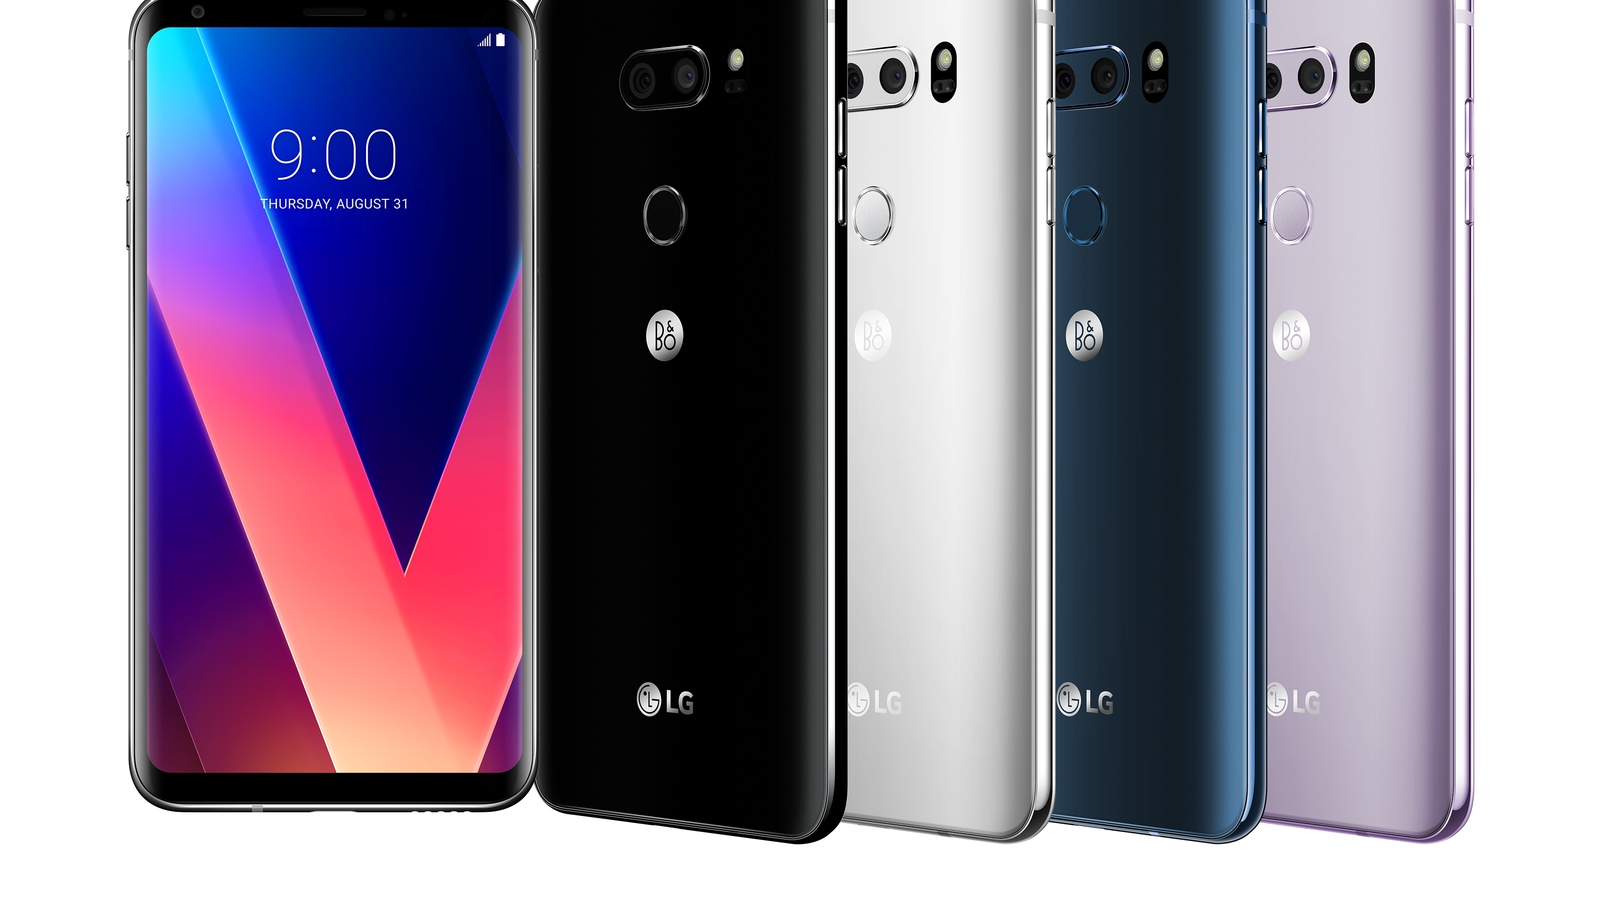 Ifa Lg Rolls Out New Flagship Smartphone